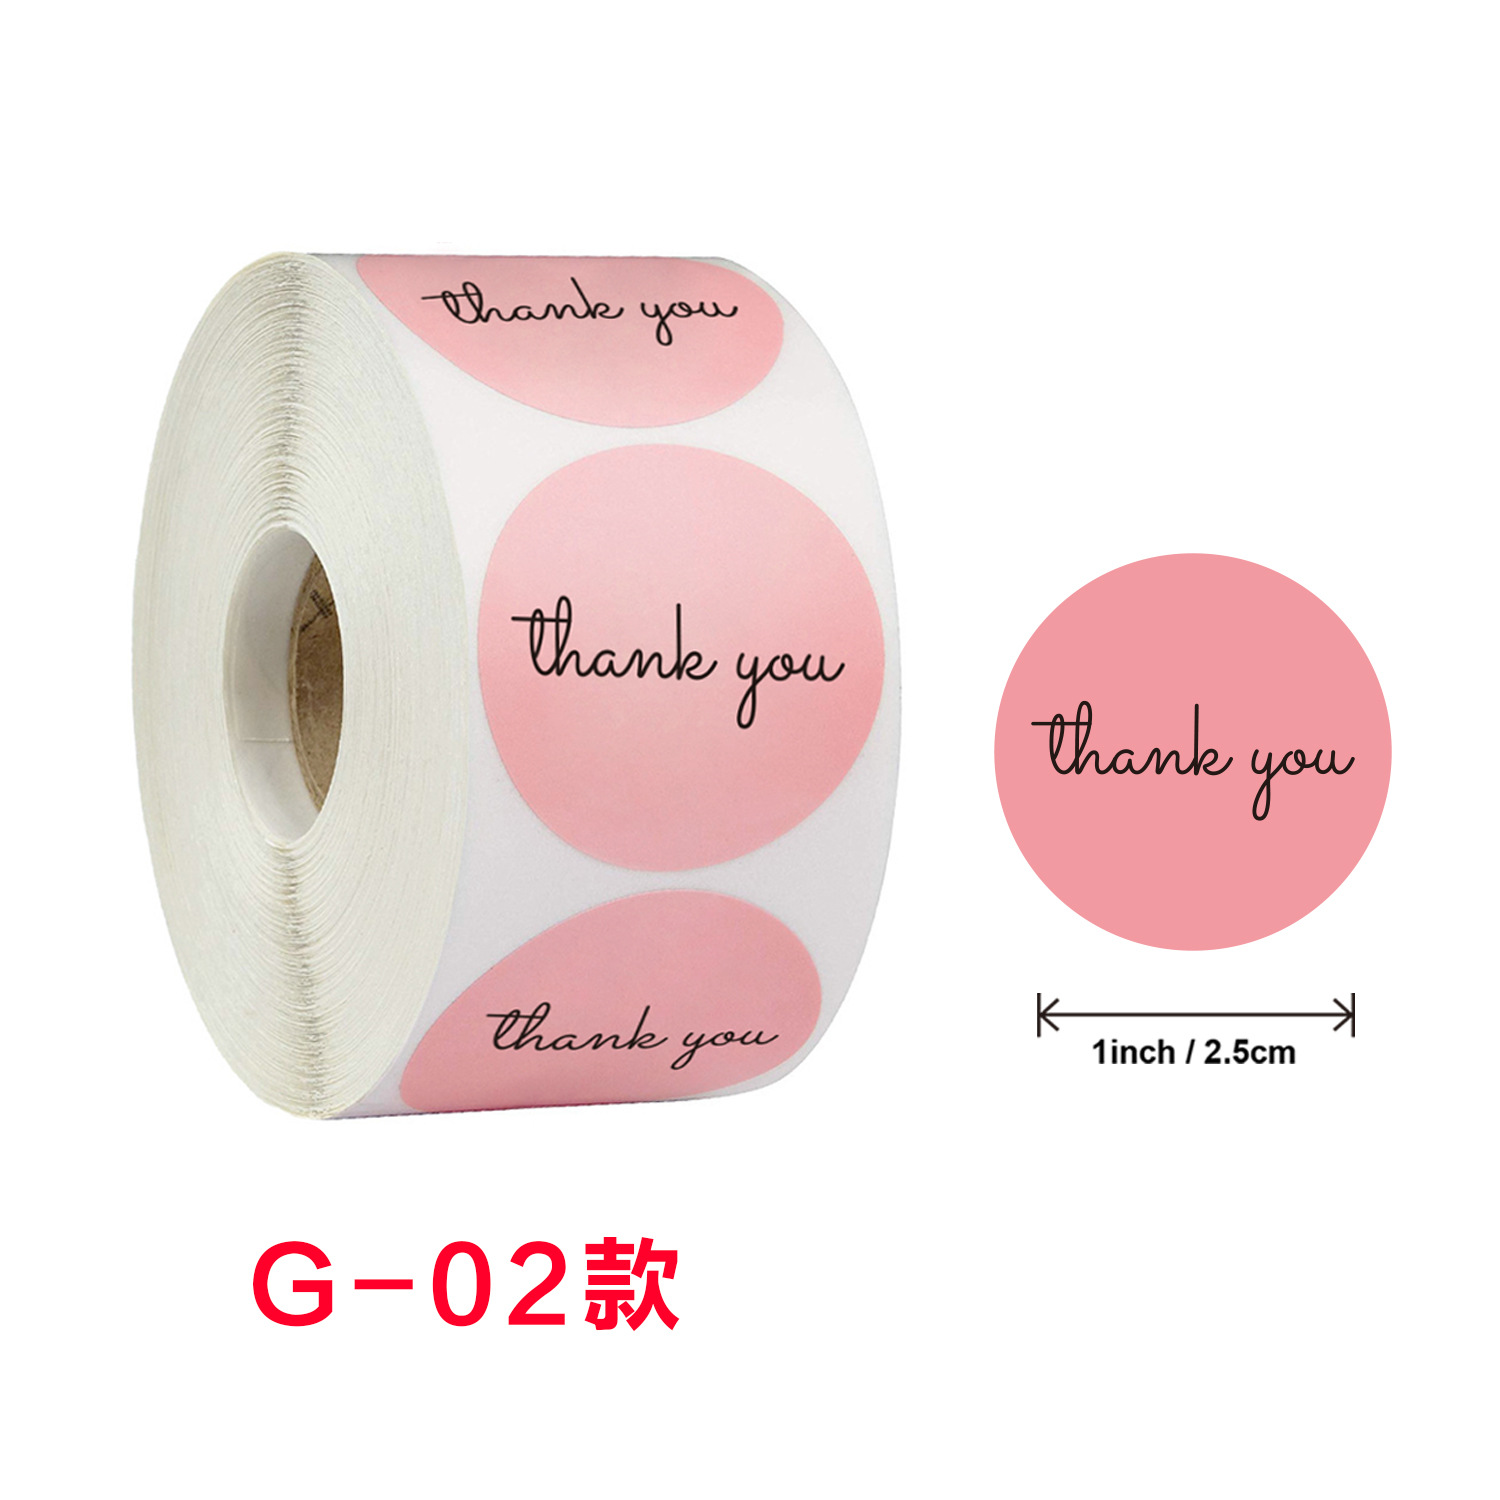 Customize 500 Pcs/Roll thank you cards custom with logo Label Sticker Roll Labels Packaging Stickers Label Machine